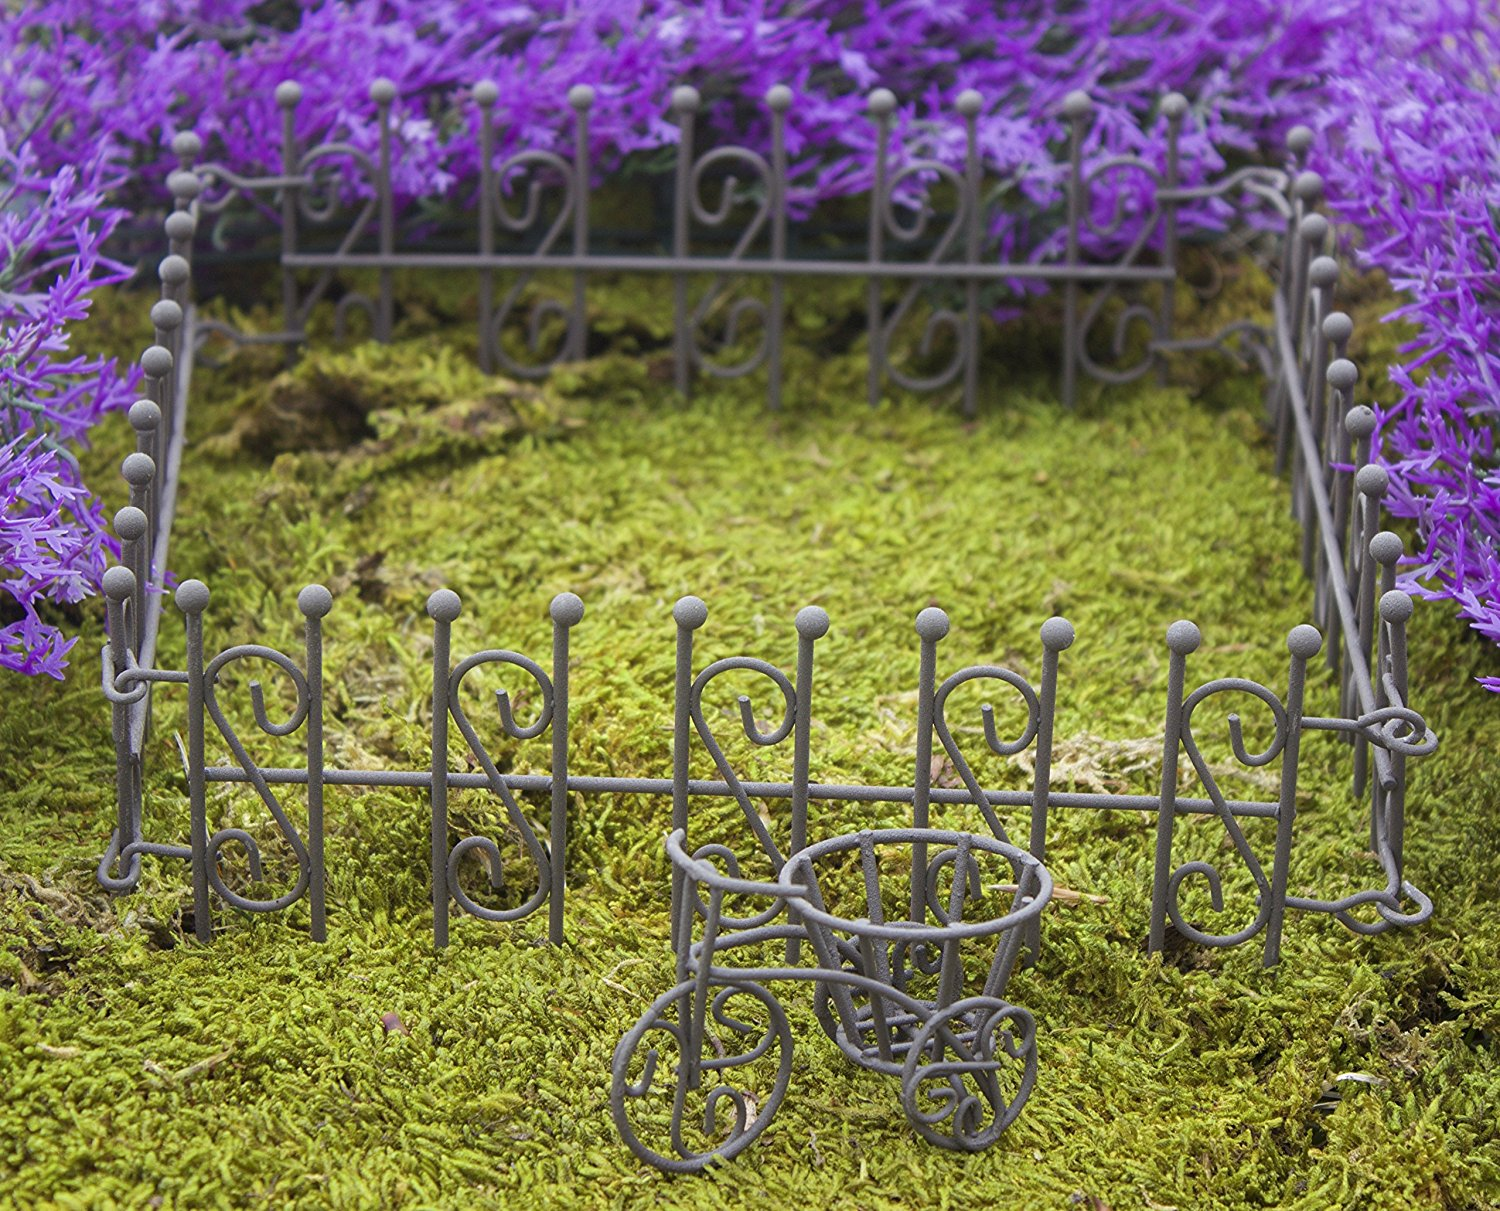 Bundle of 2 Miniature Fairy Garden Items - Rustic Iron Bicycle and Fence (Bicycle and Iron Fence)